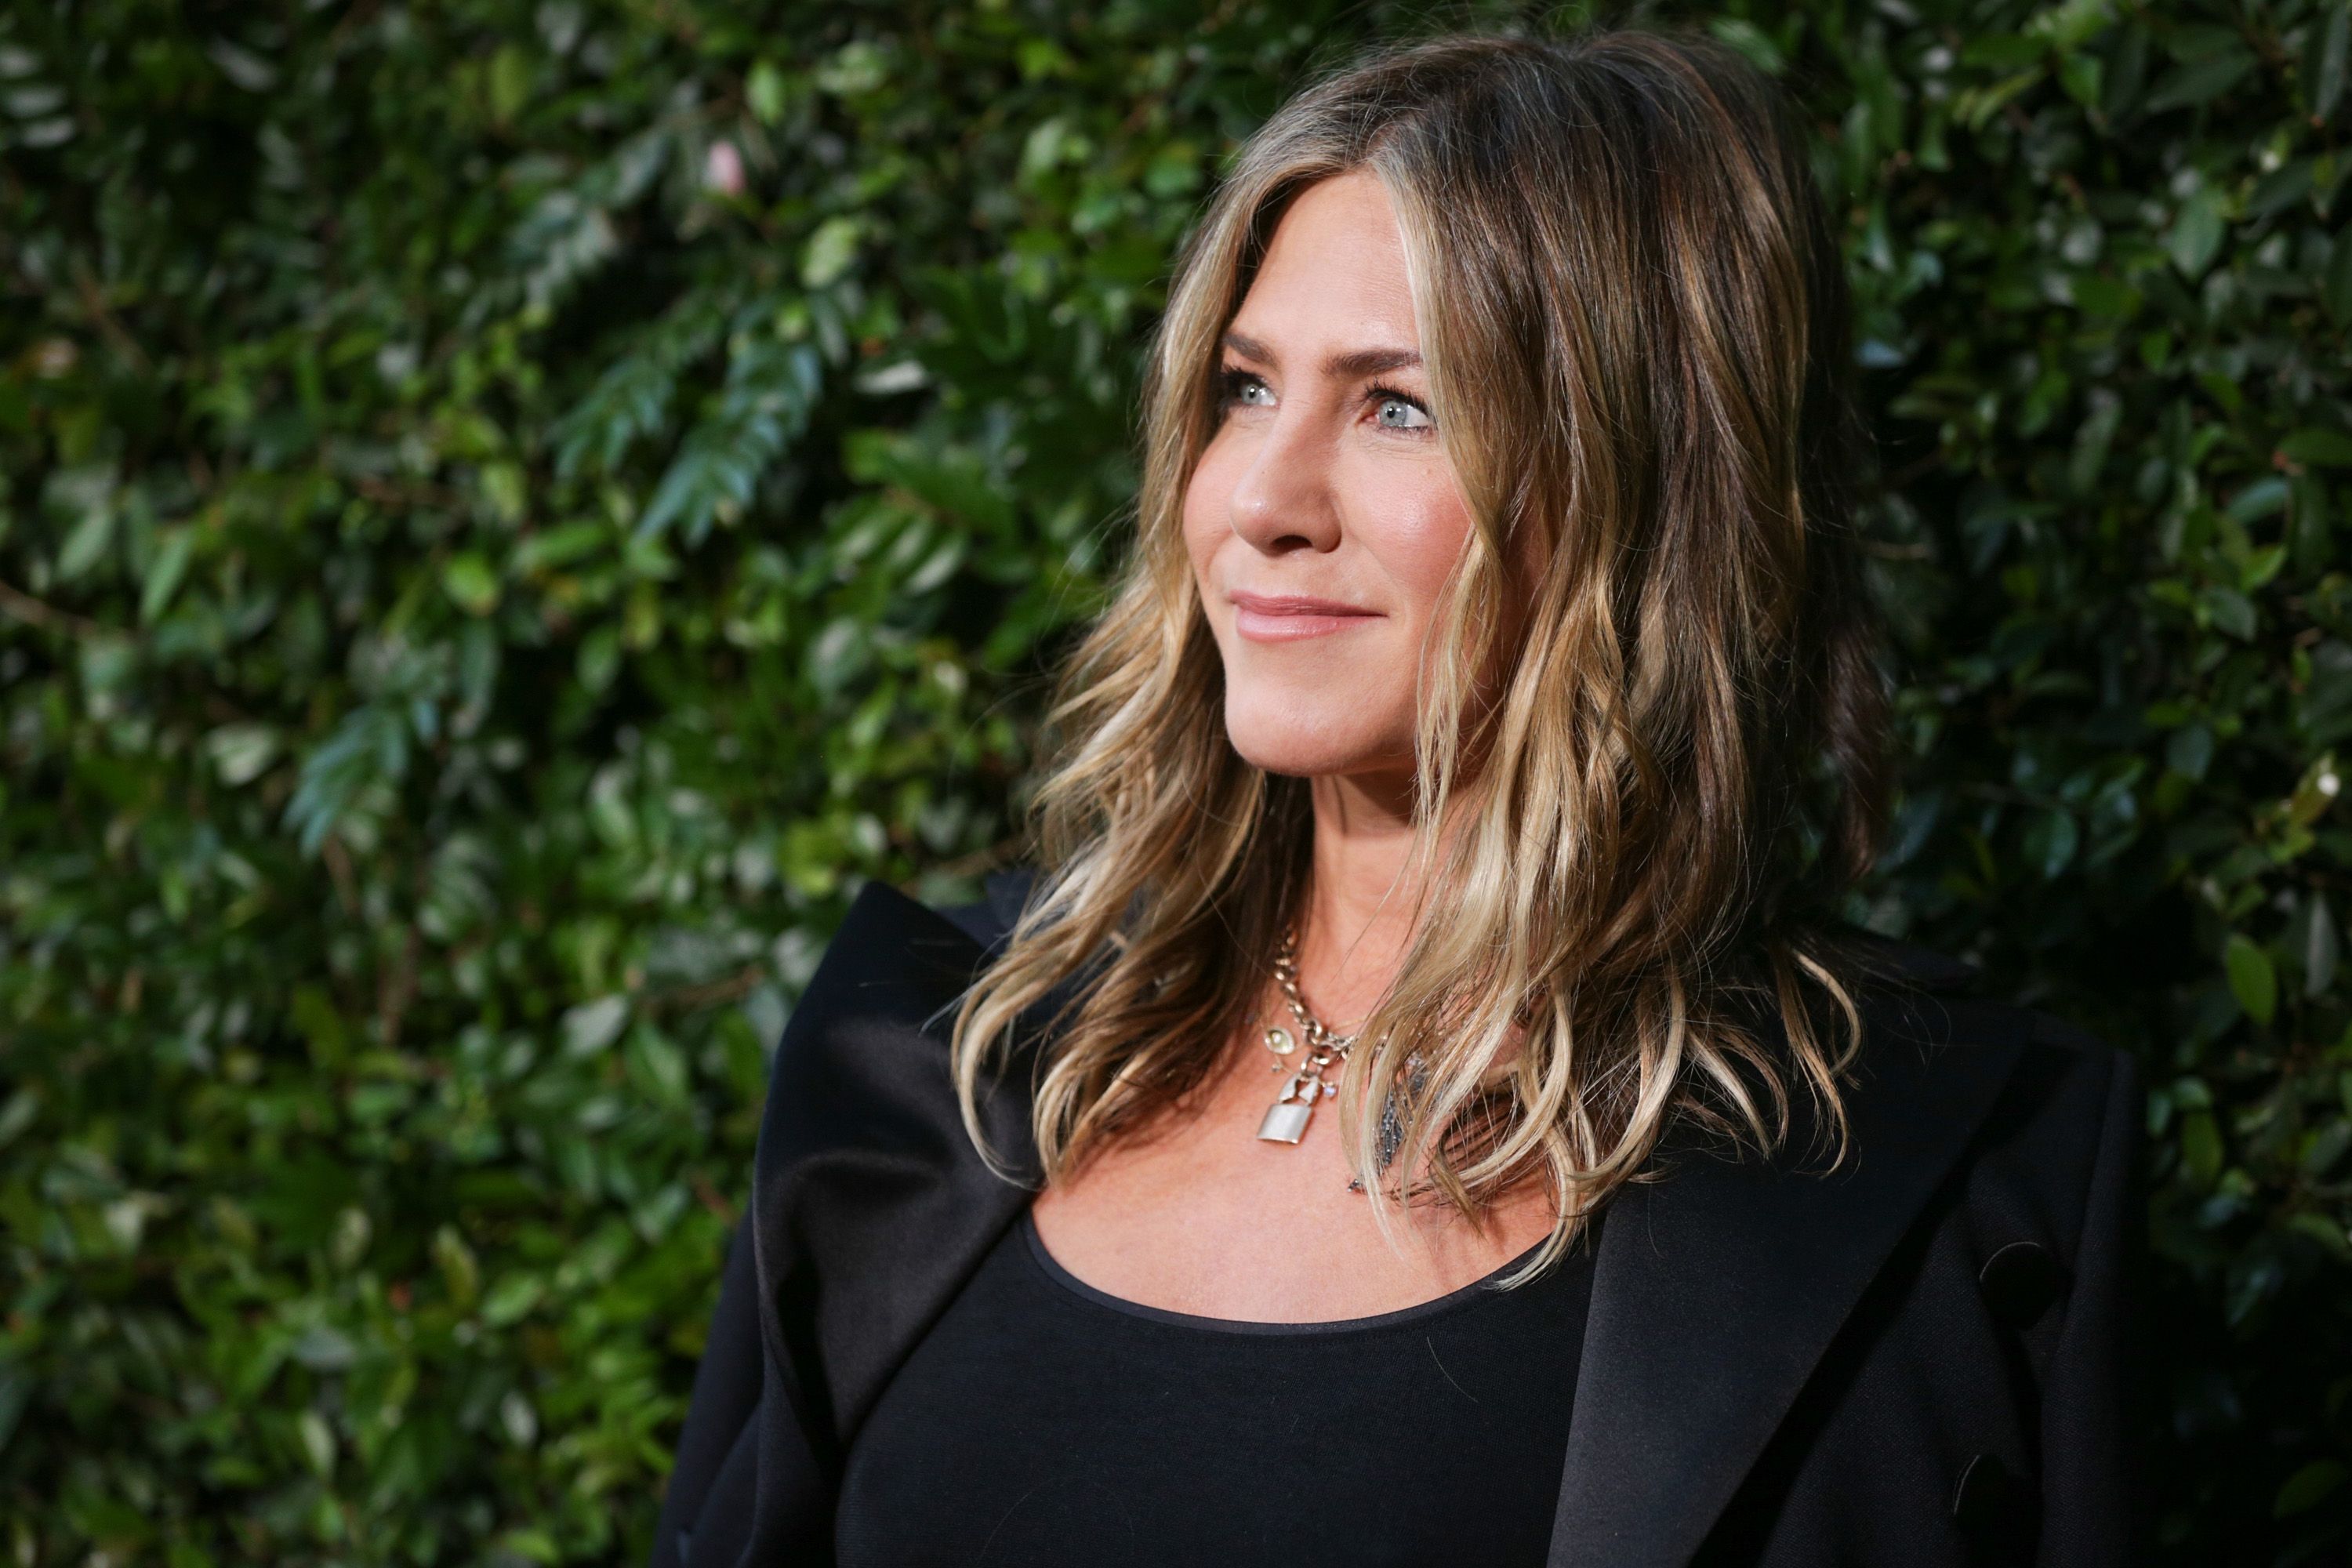 MALIBU, CA - JUNE 02: Jennifer Aniston attends the CHANEL Dinner Celebrating Our Majestic Oceans, A Benefit For NRDC on June 2, 2018 in Malibu, California. (Photo by Rich Fury/Getty Images)